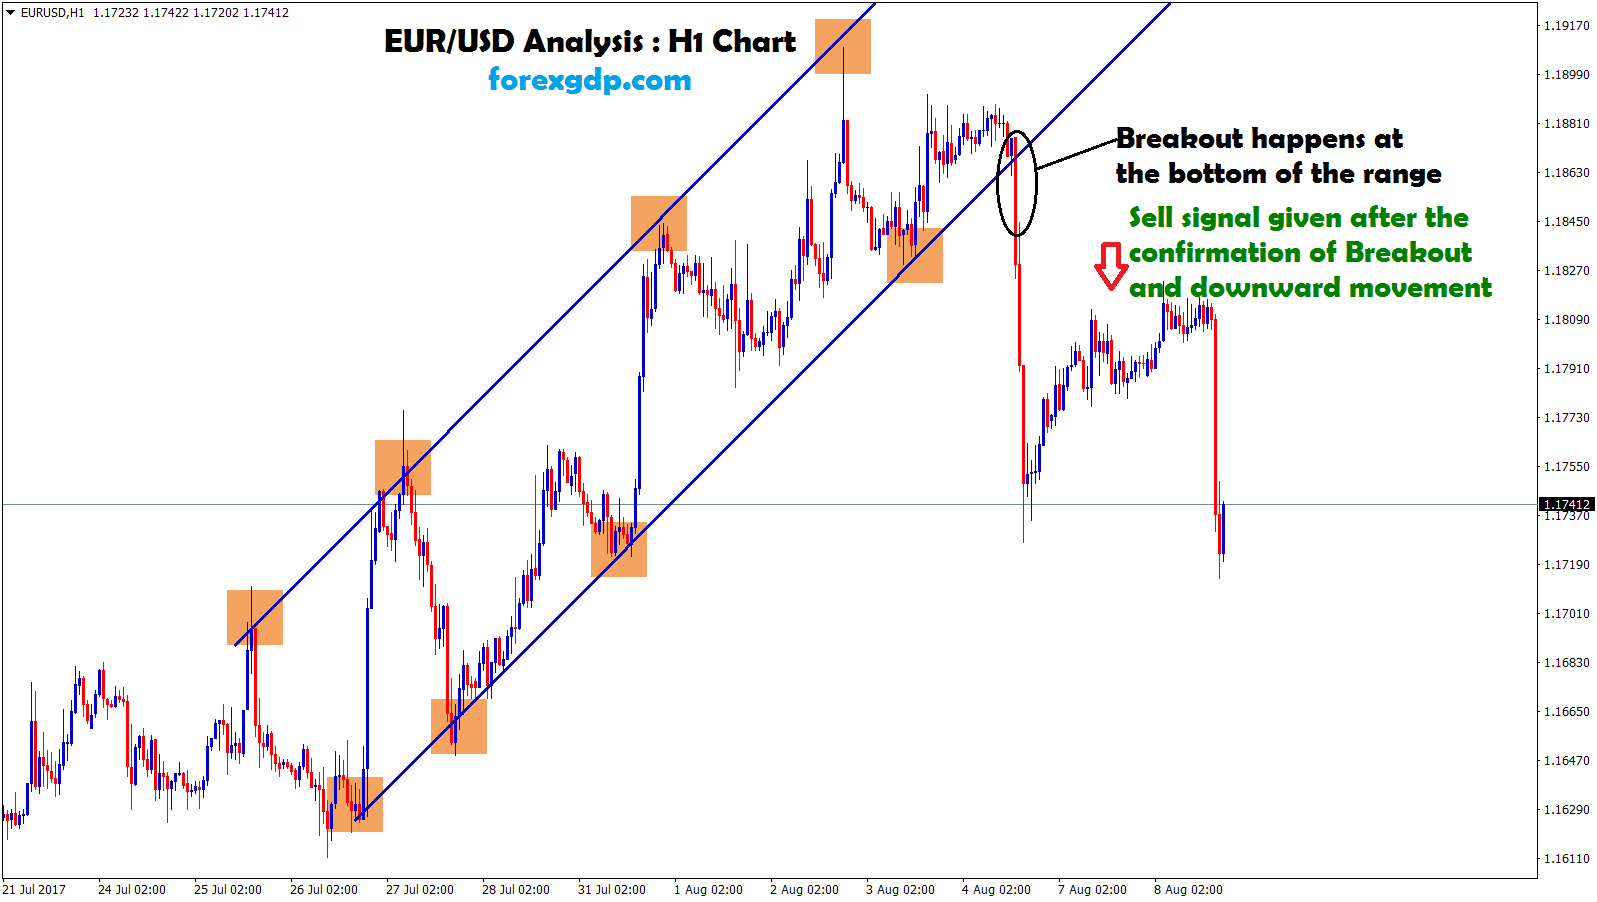 EURUSD breakout confirmation for placing sell trade